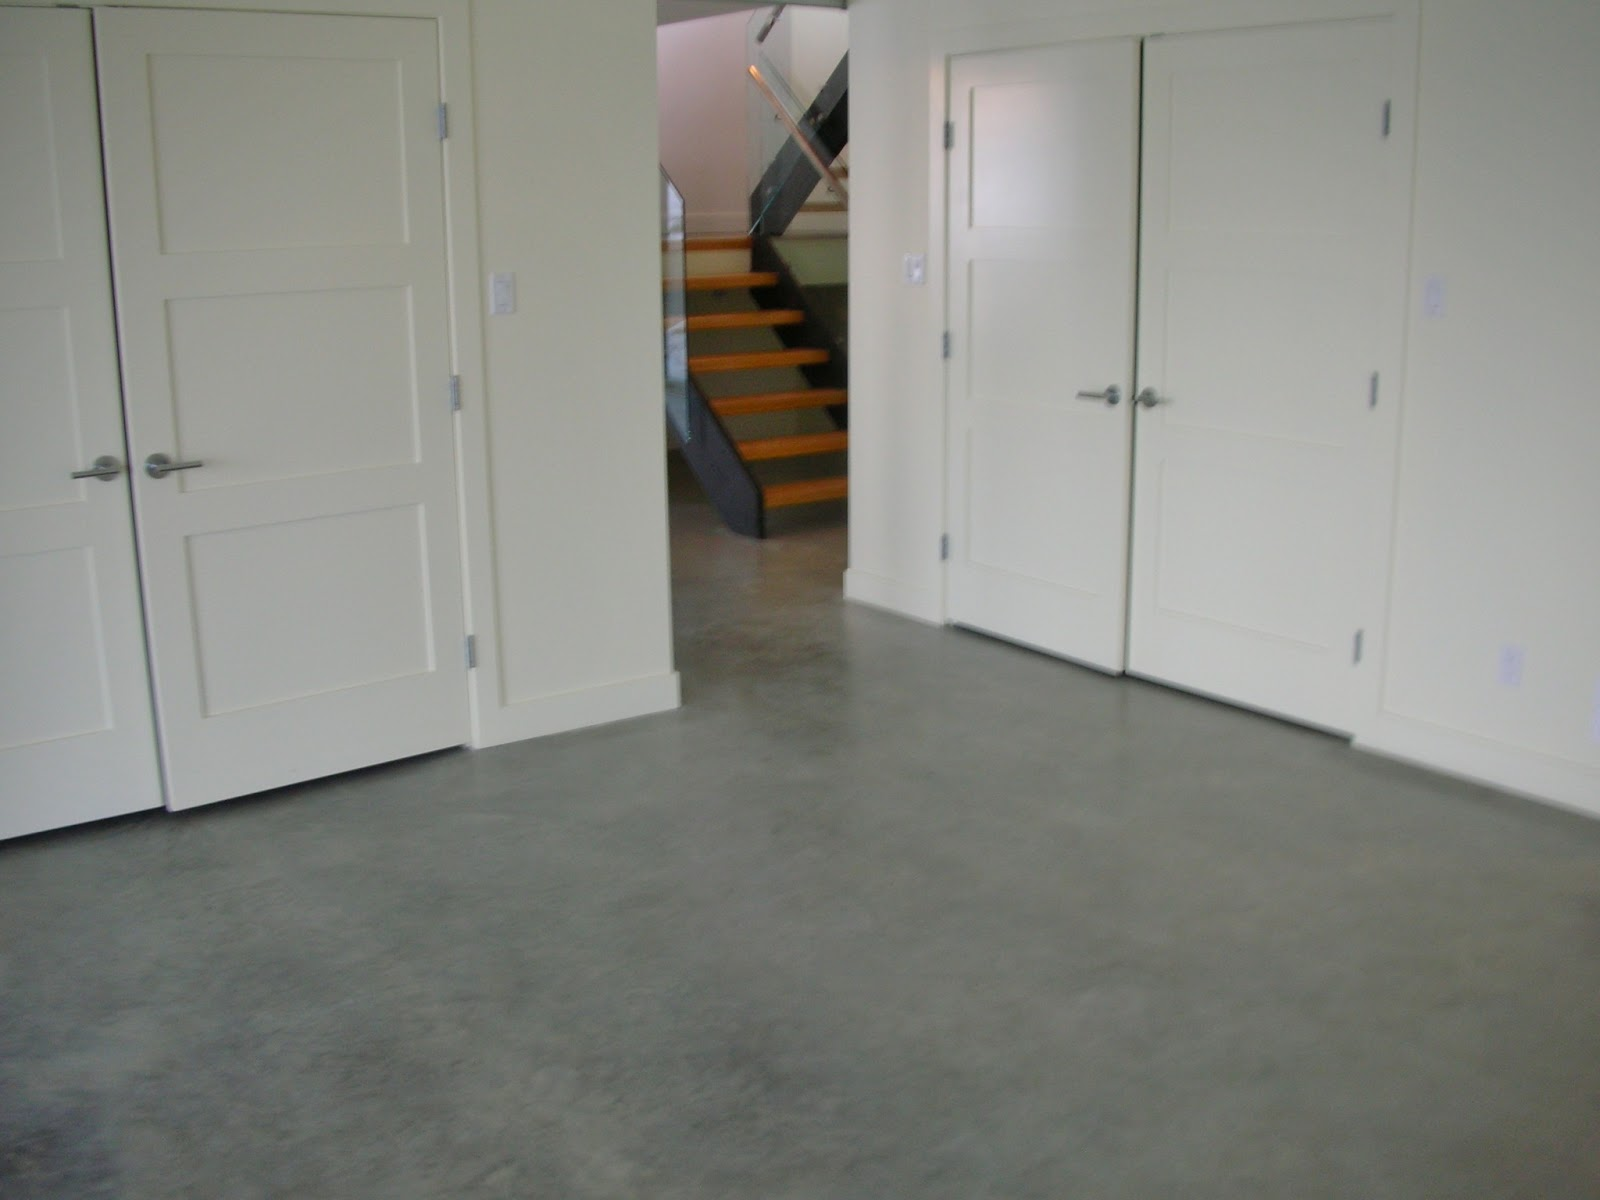 MODE CONCRETE Concrete Floors Easily Create Design Element Next To These Mo